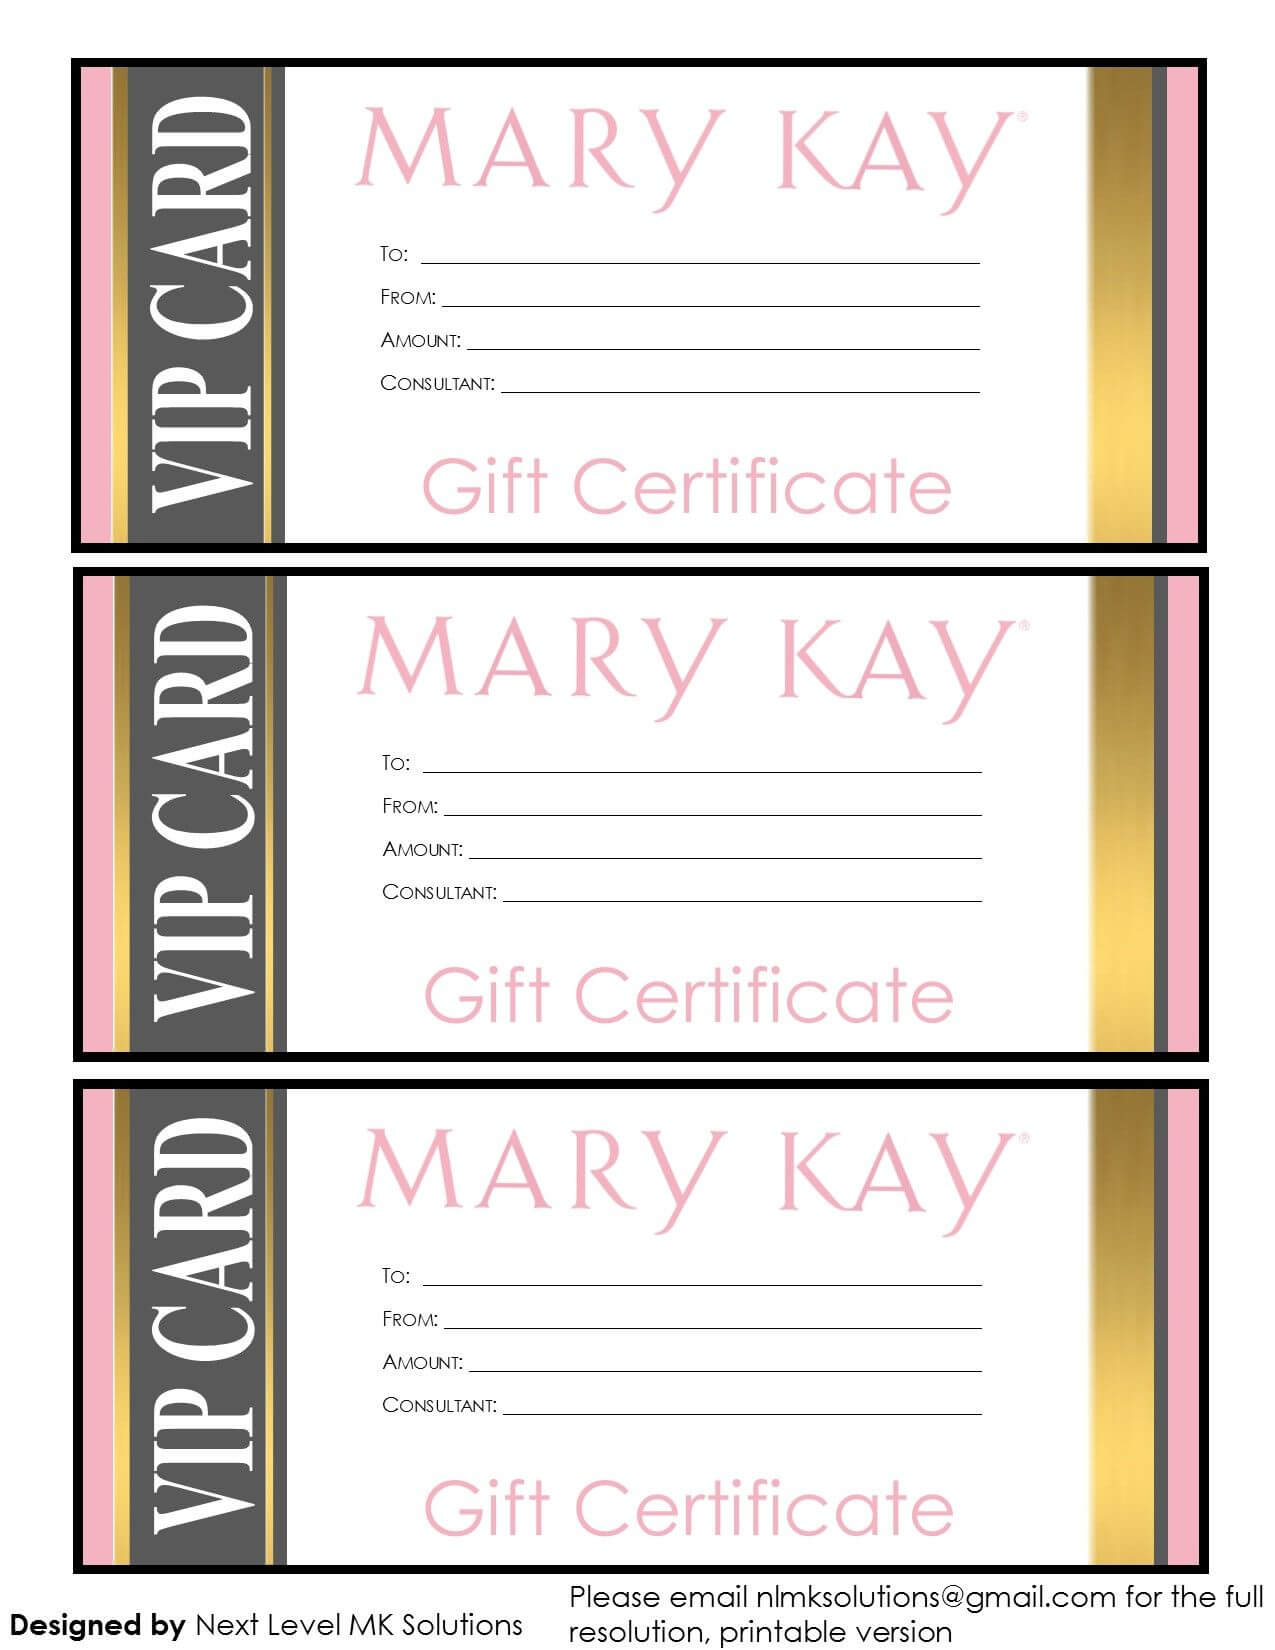 Mary Kay Gift Certificates - Please Email For The Full Pdf In Mary Kay Gift Certificate Template